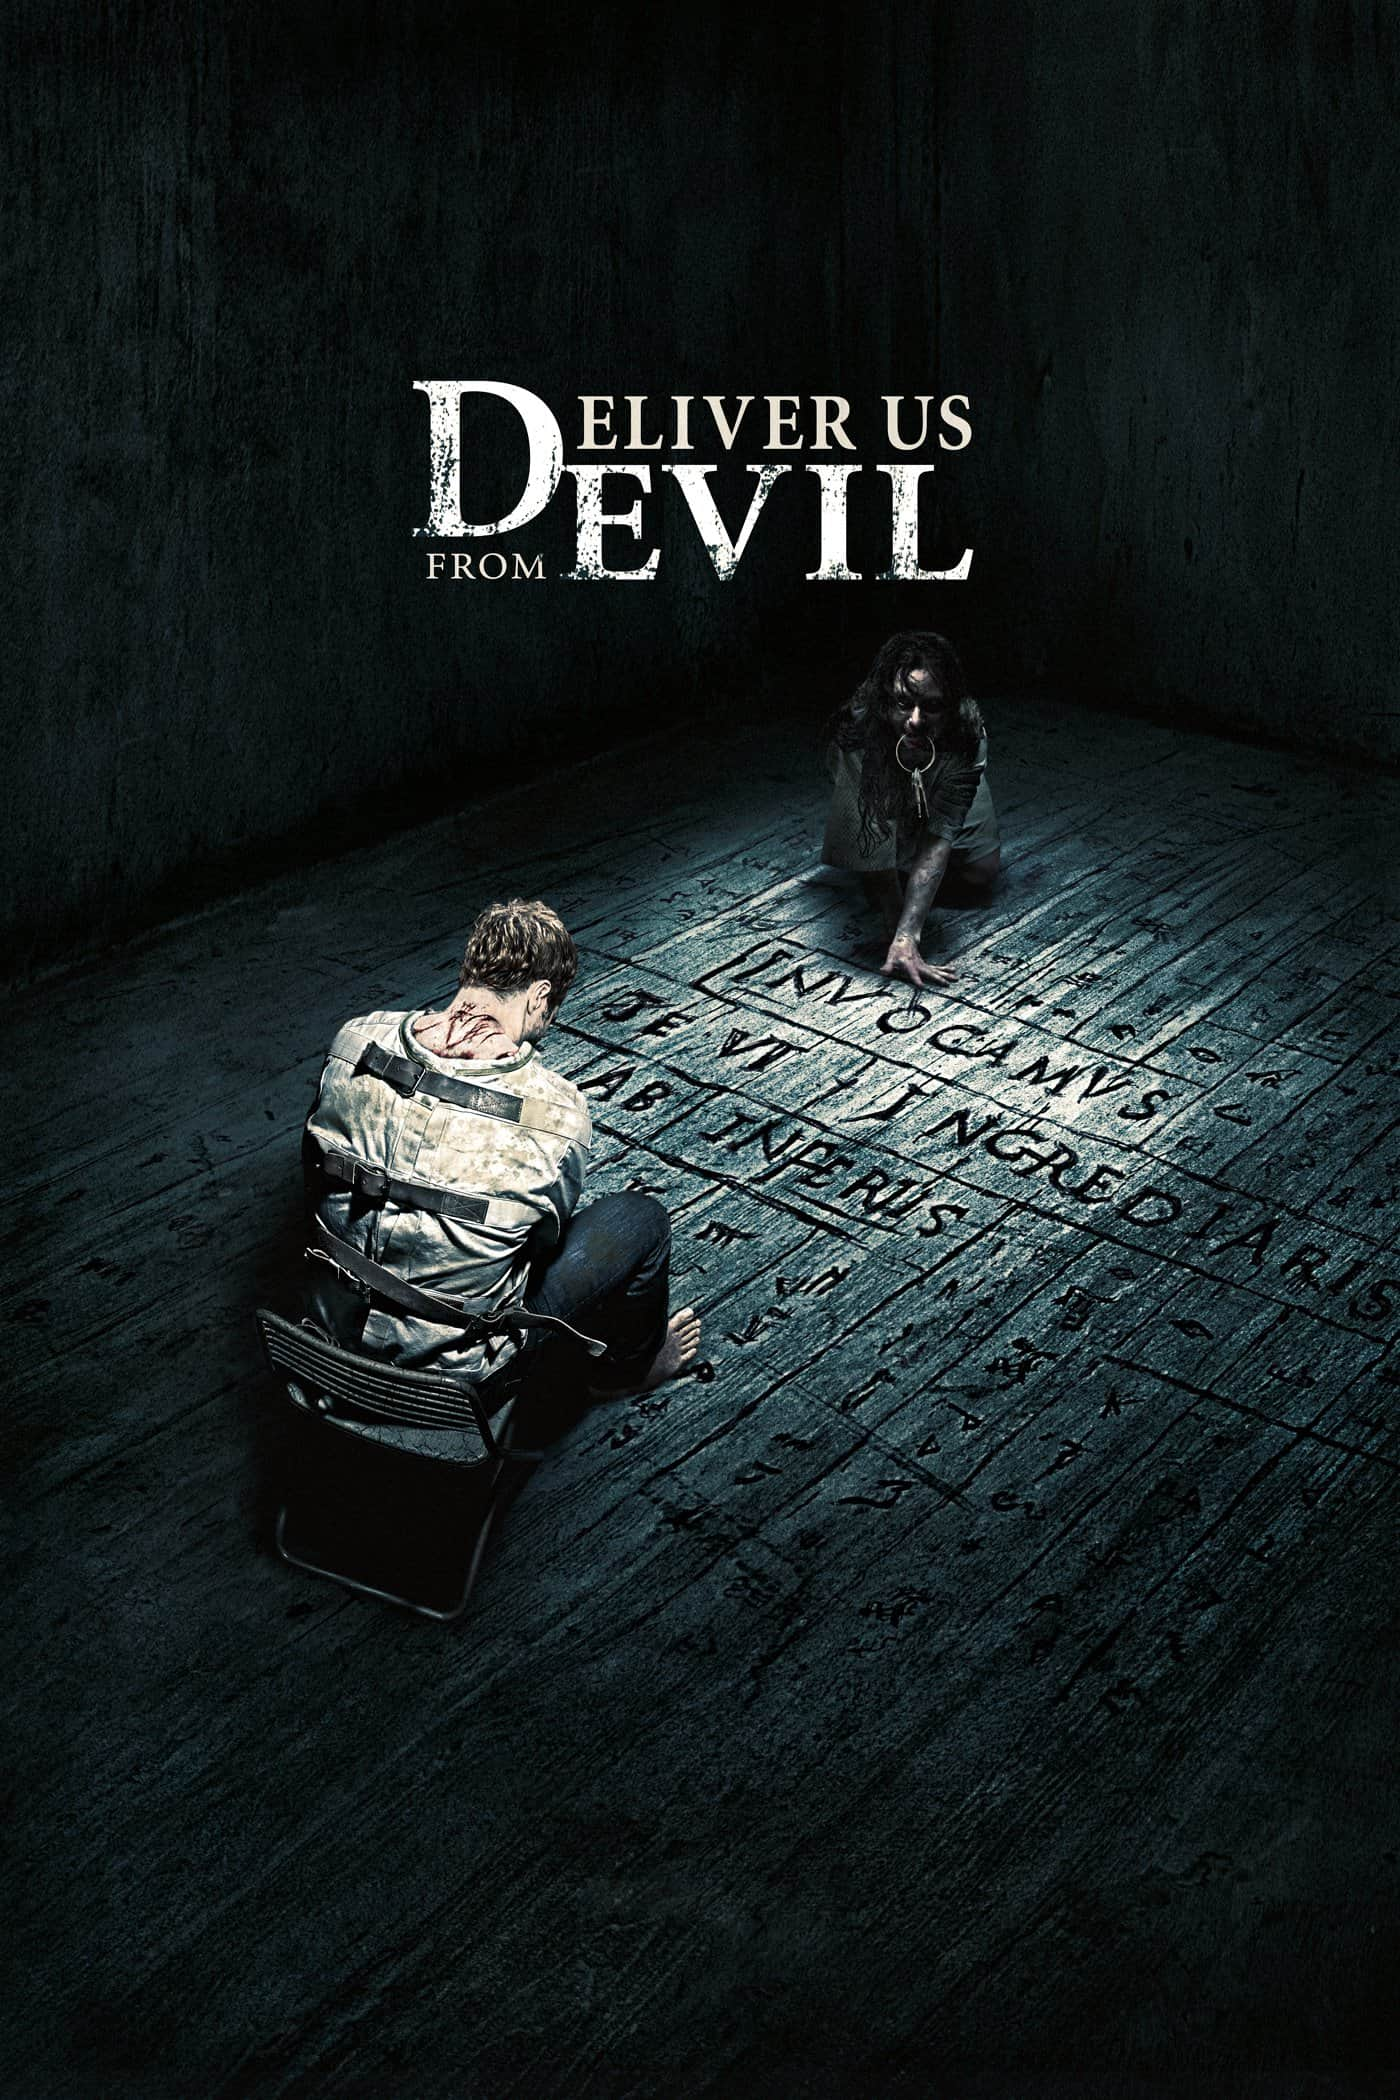 Deliver Us from Evil, 2014